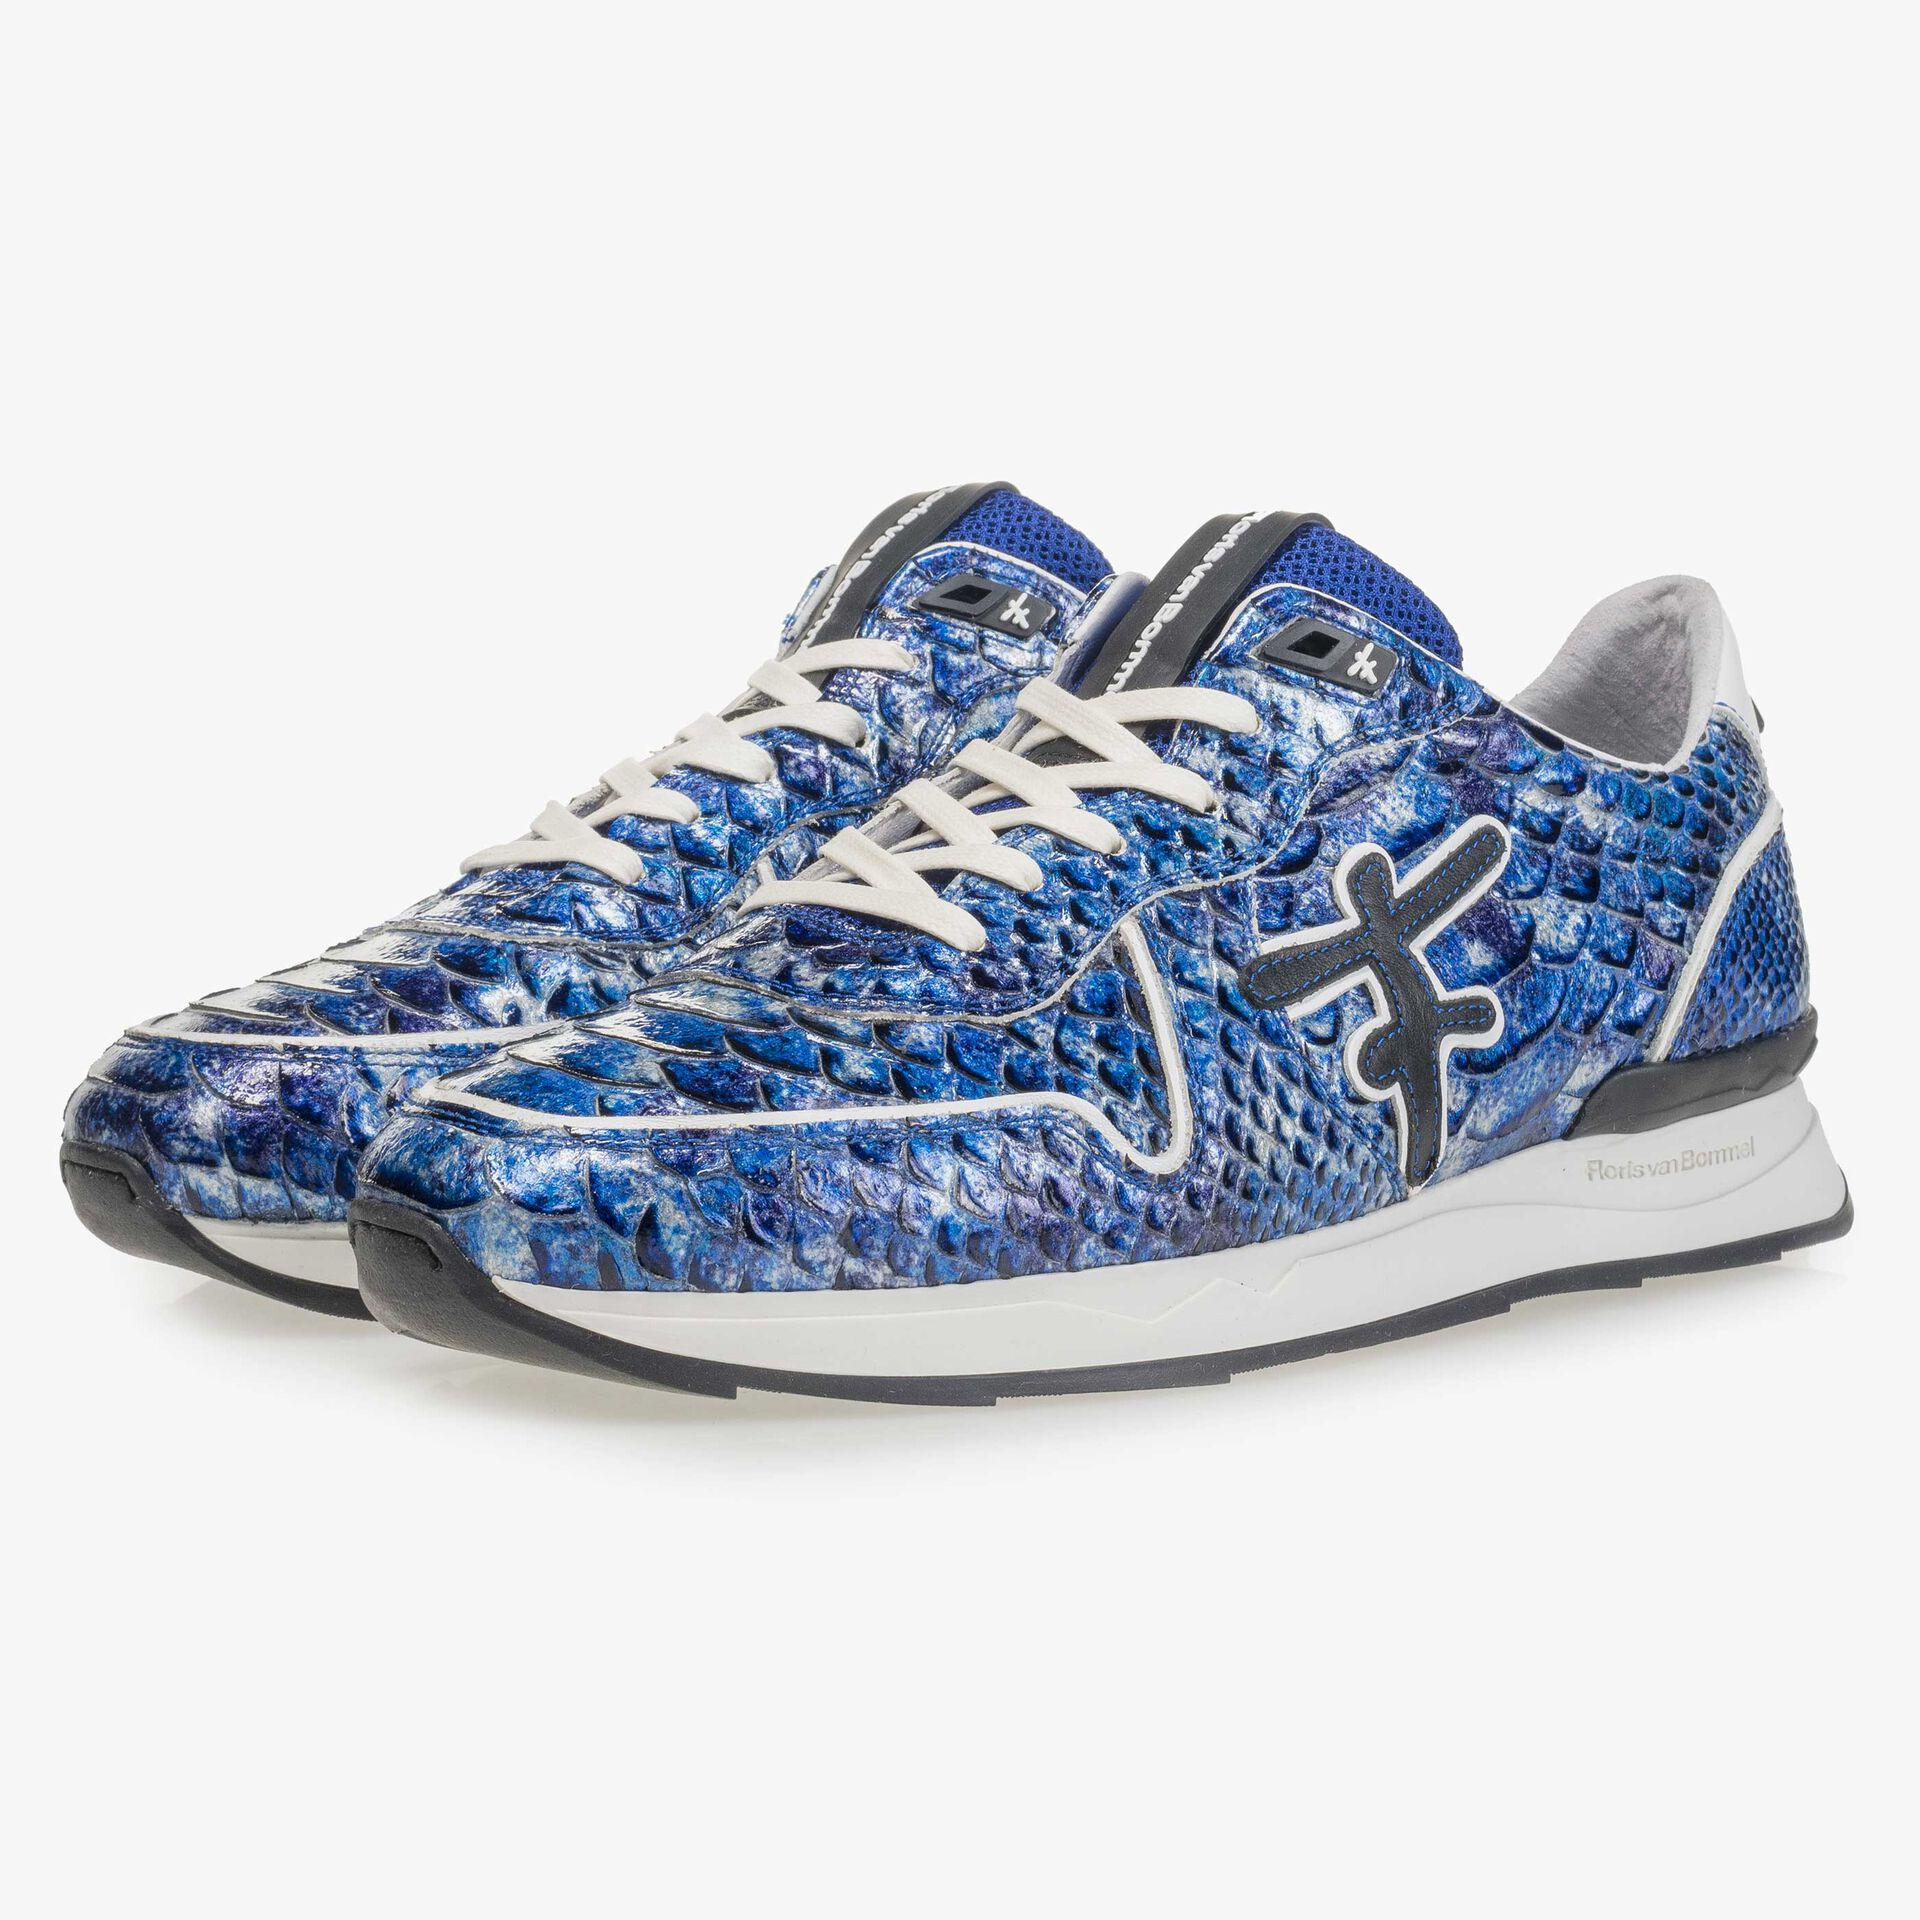 Blue patent leather snake print sneaker